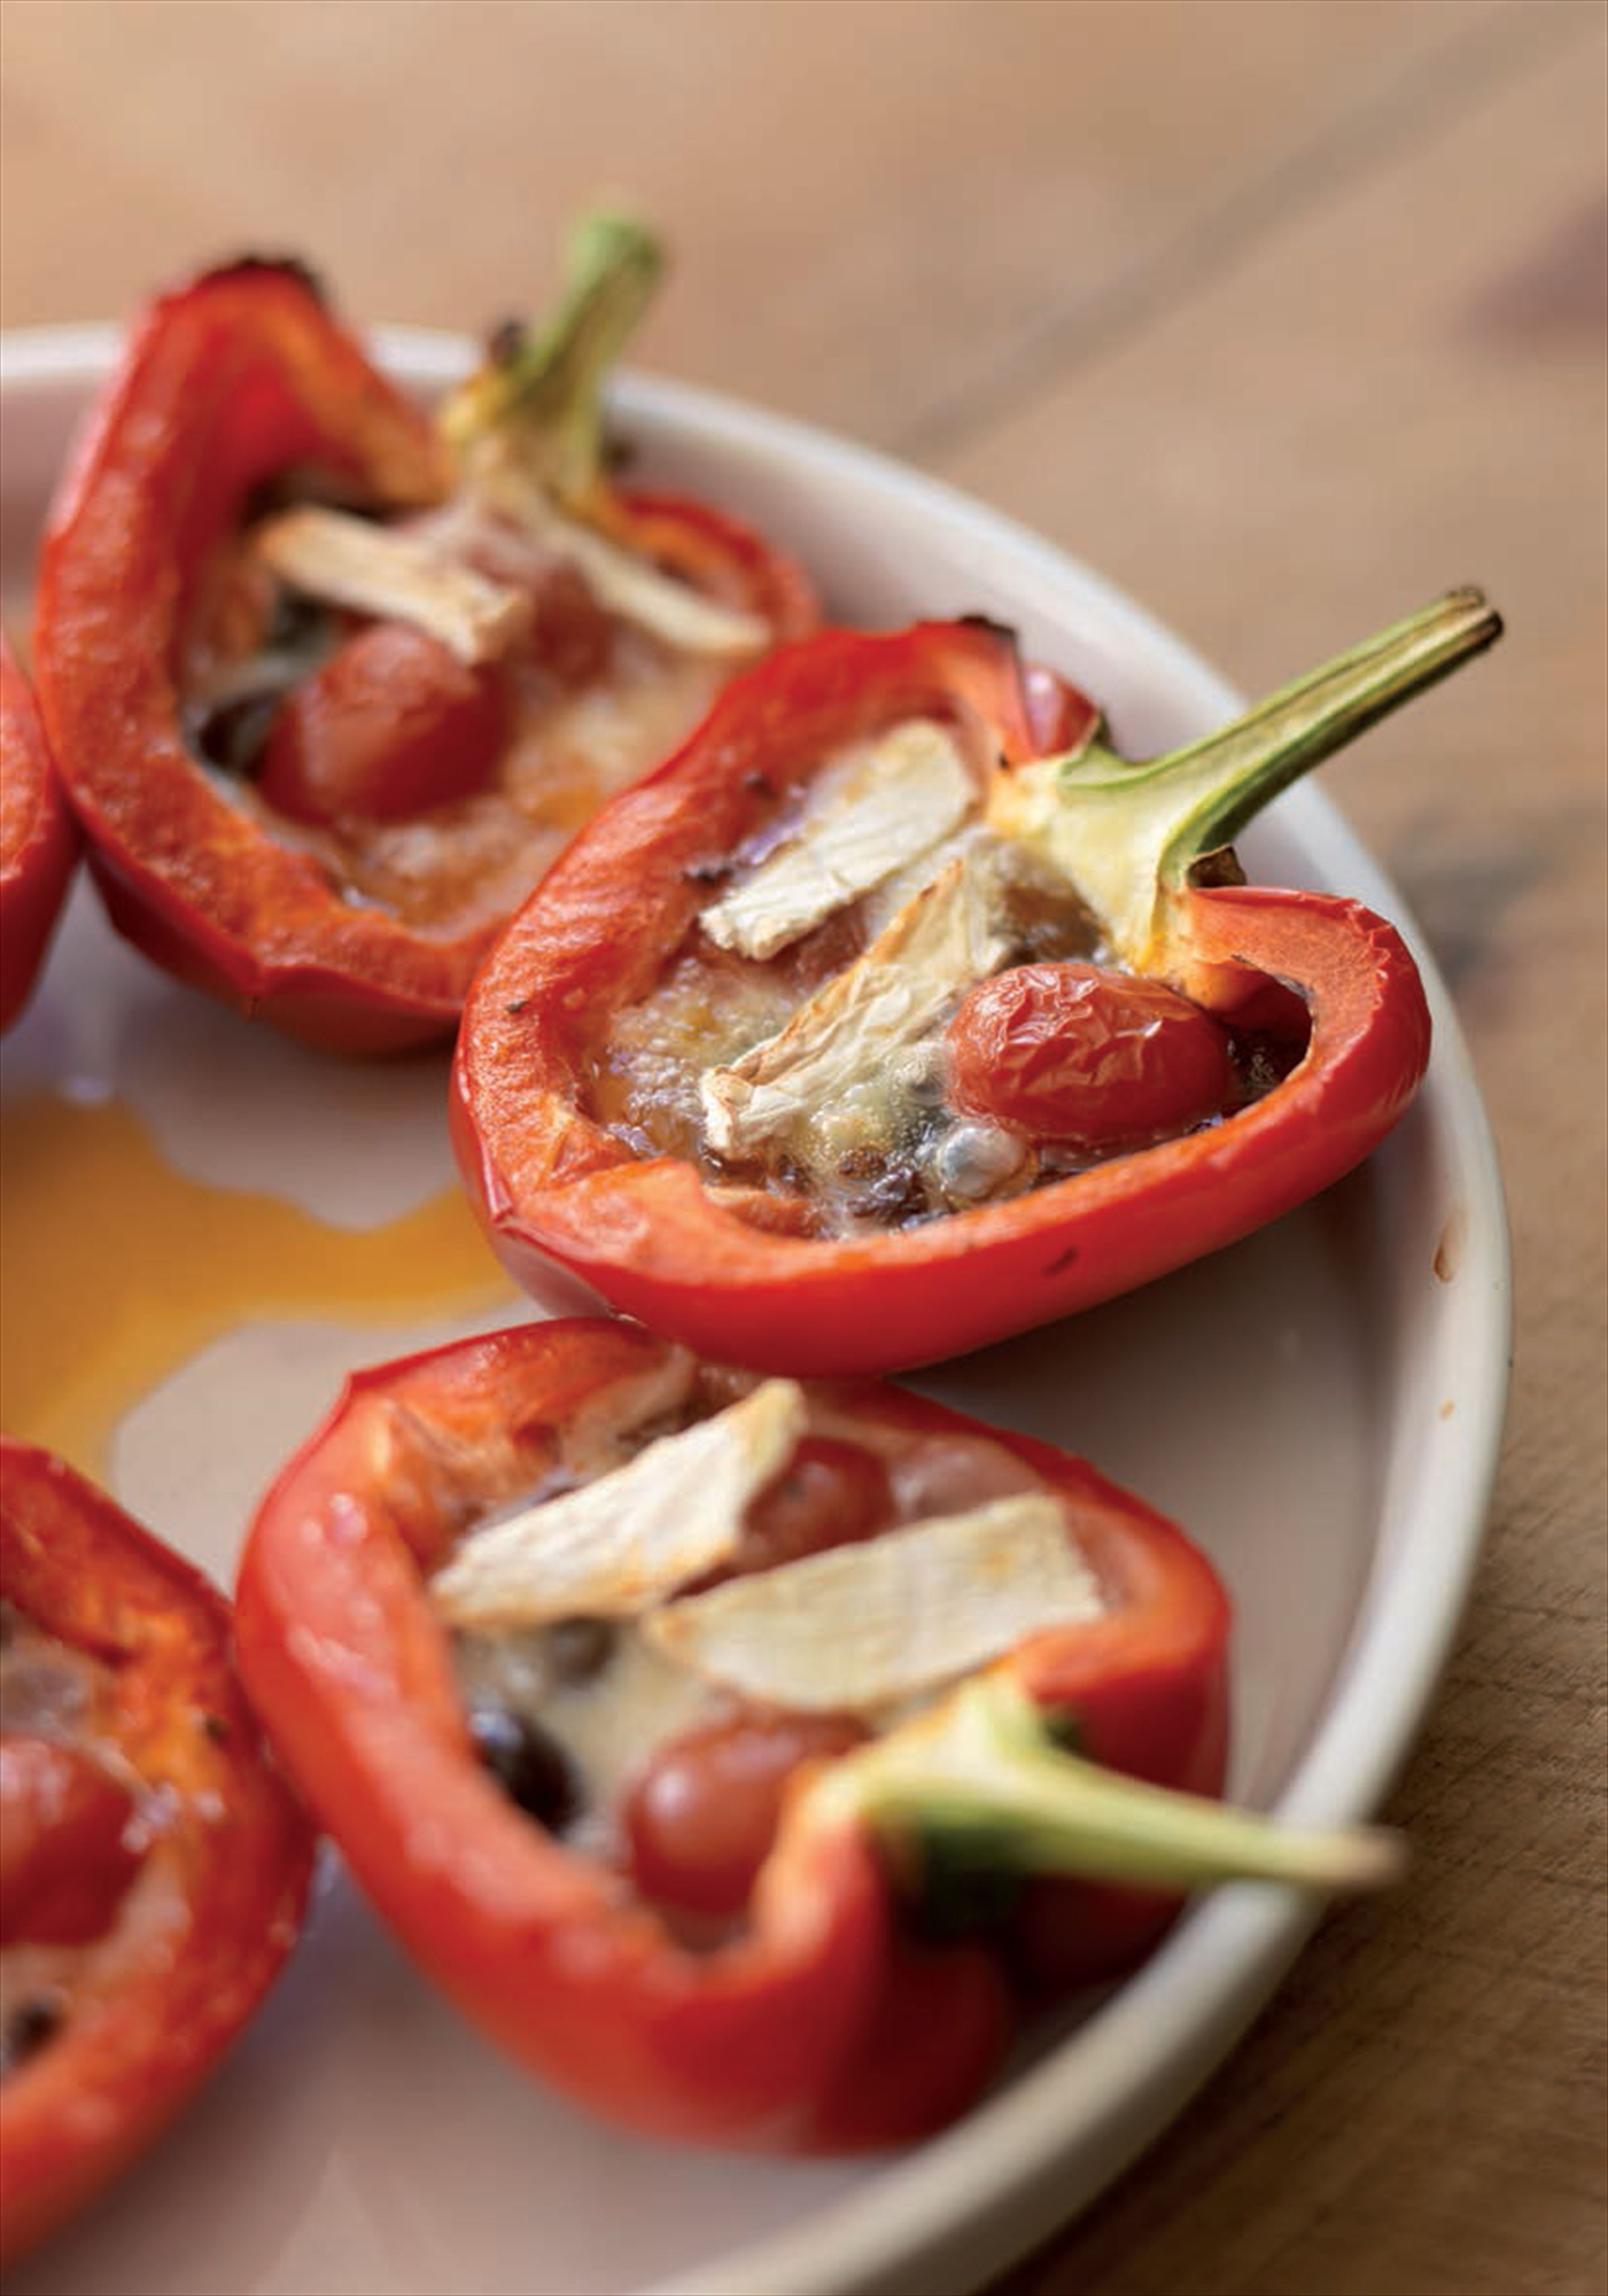 Stuffed peppers with brie